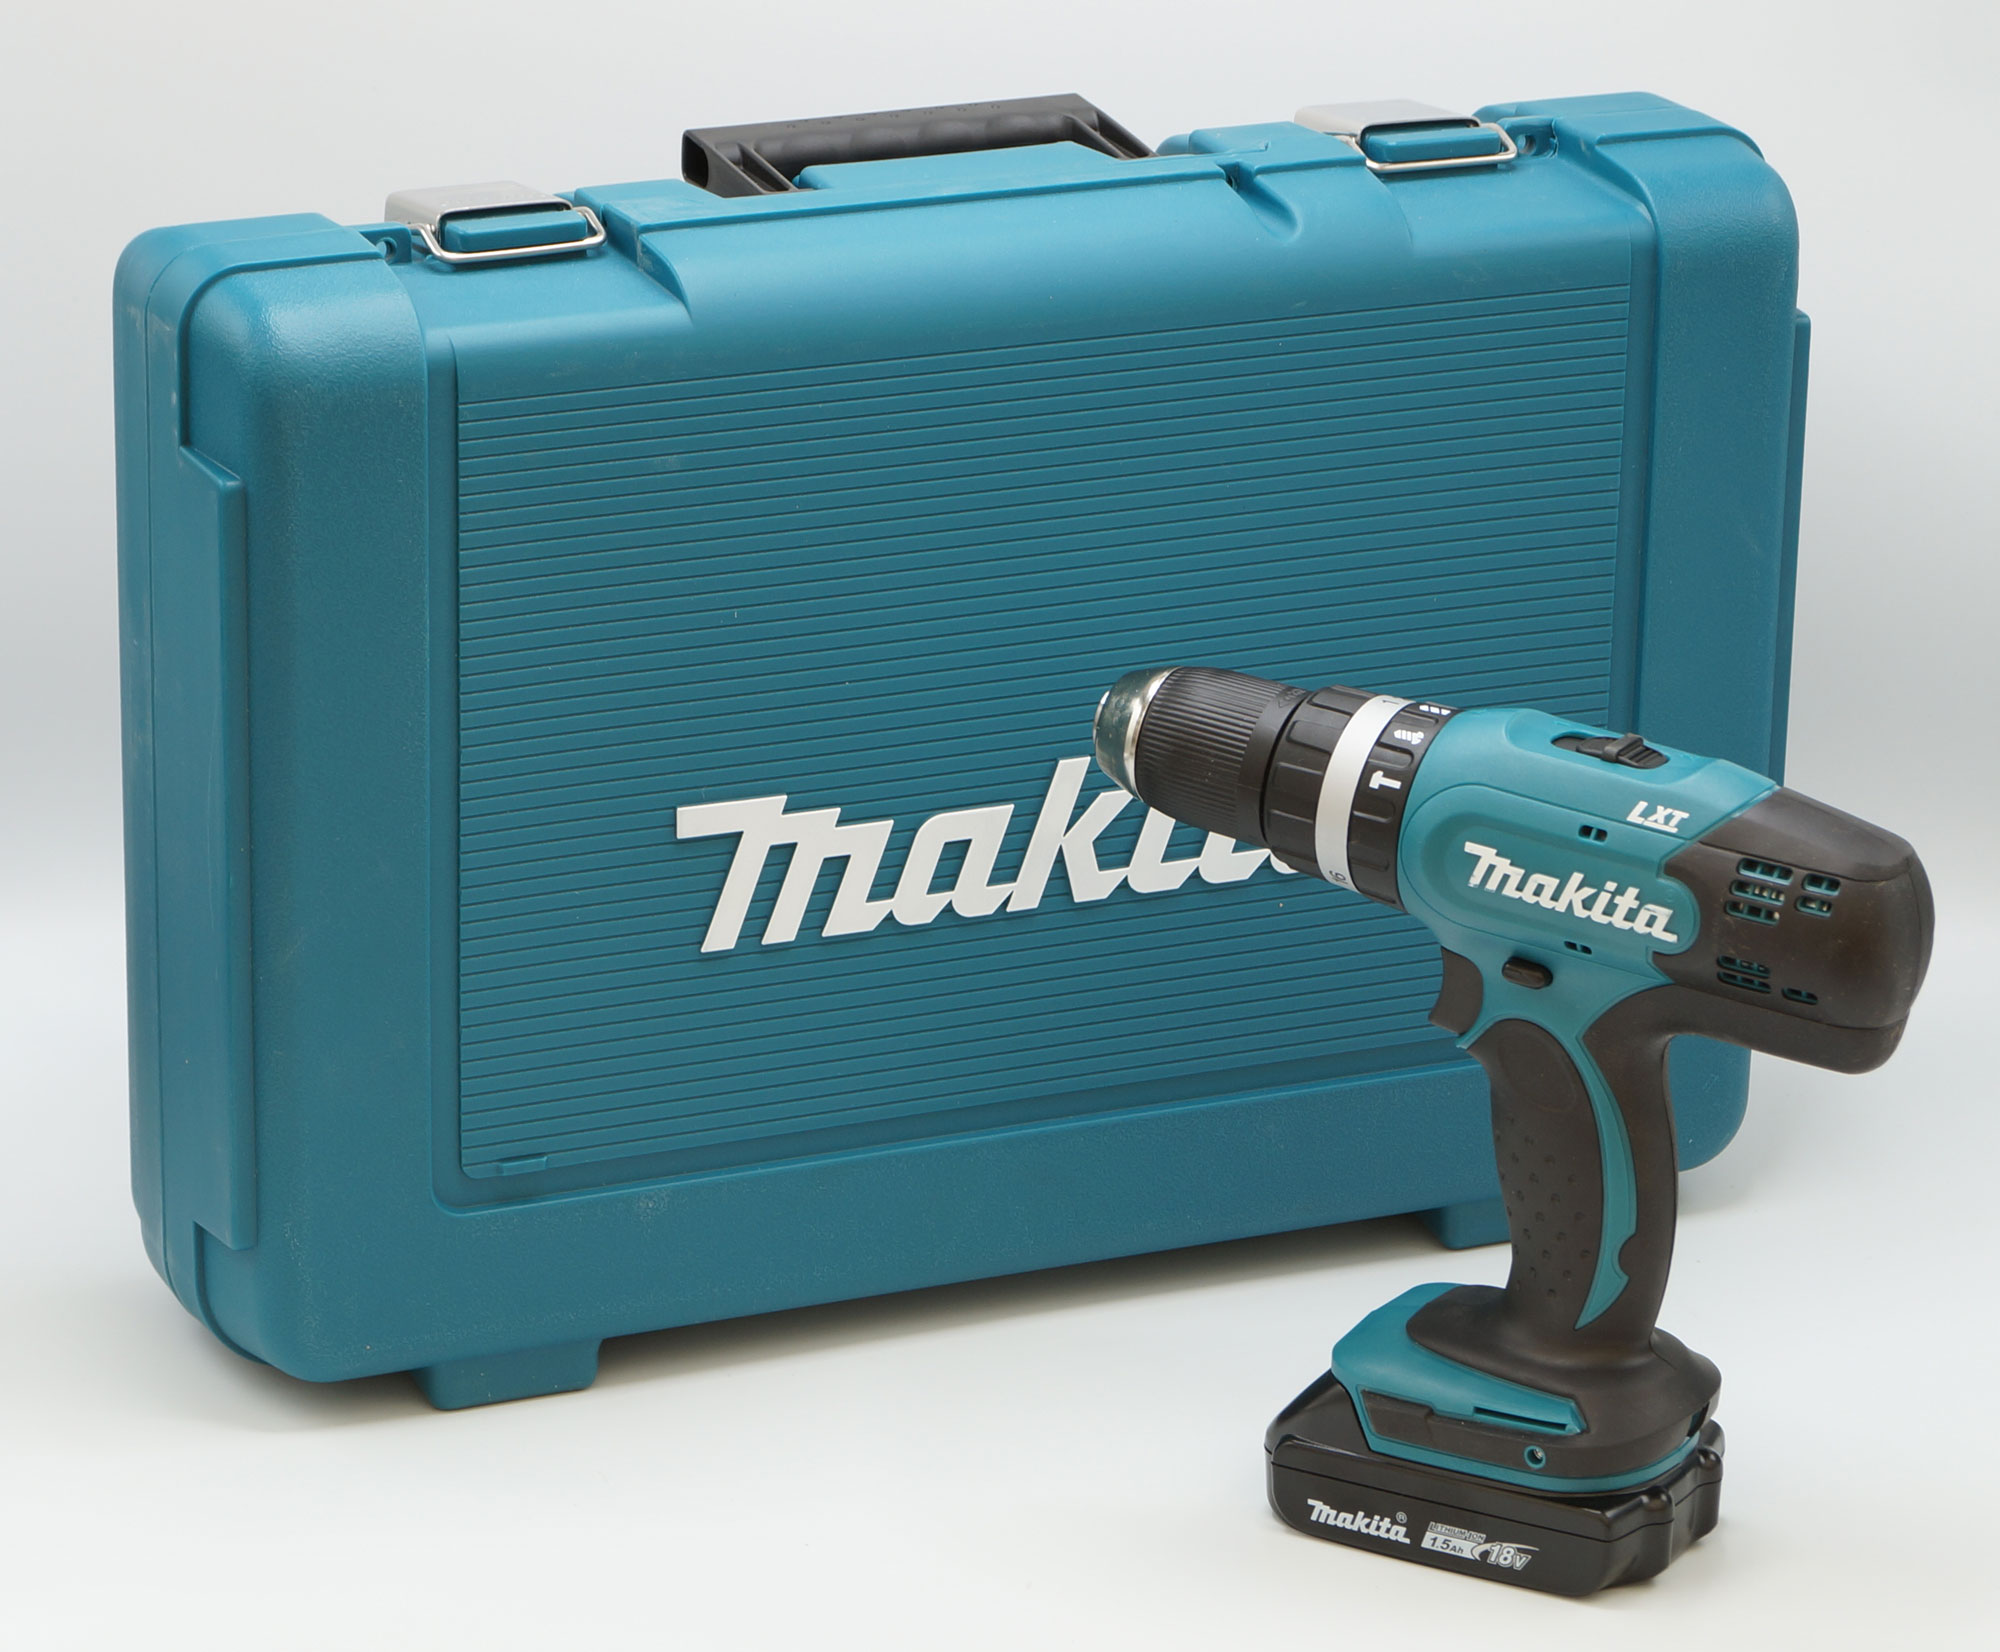 makita dhp453 y1j 18v cordless hammer drill incl case 1. Black Bedroom Furniture Sets. Home Design Ideas